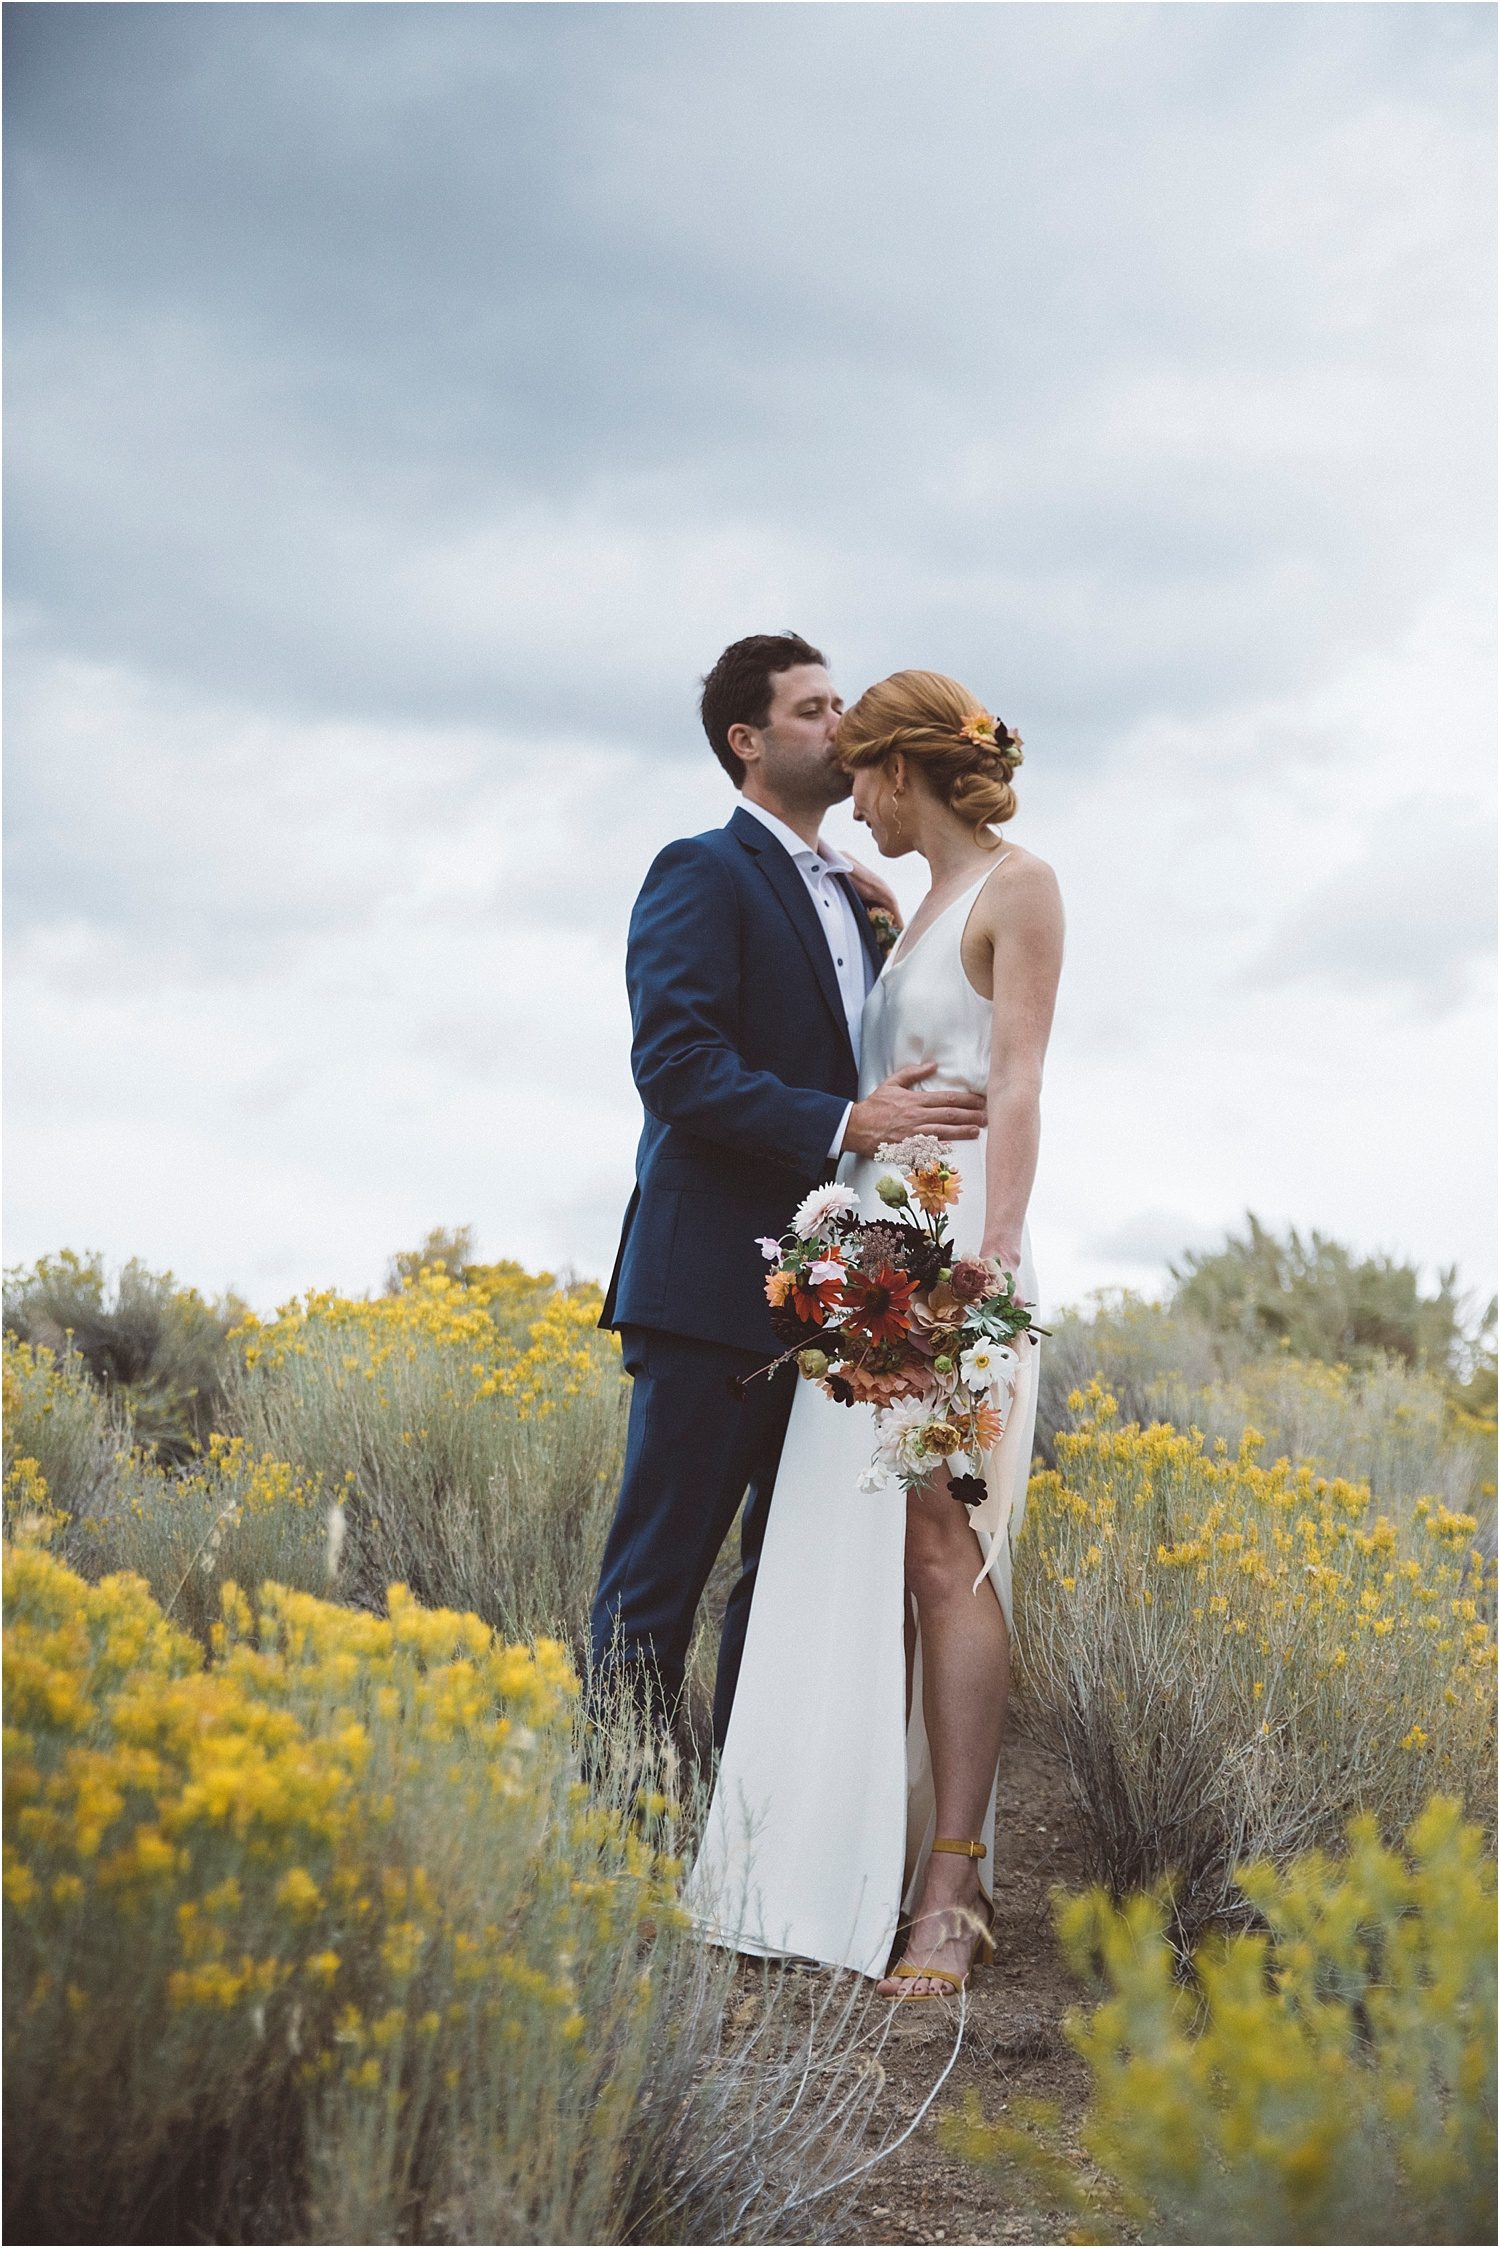 CAITLIN + JOE - BRASADA RANCH | BEND OREGON